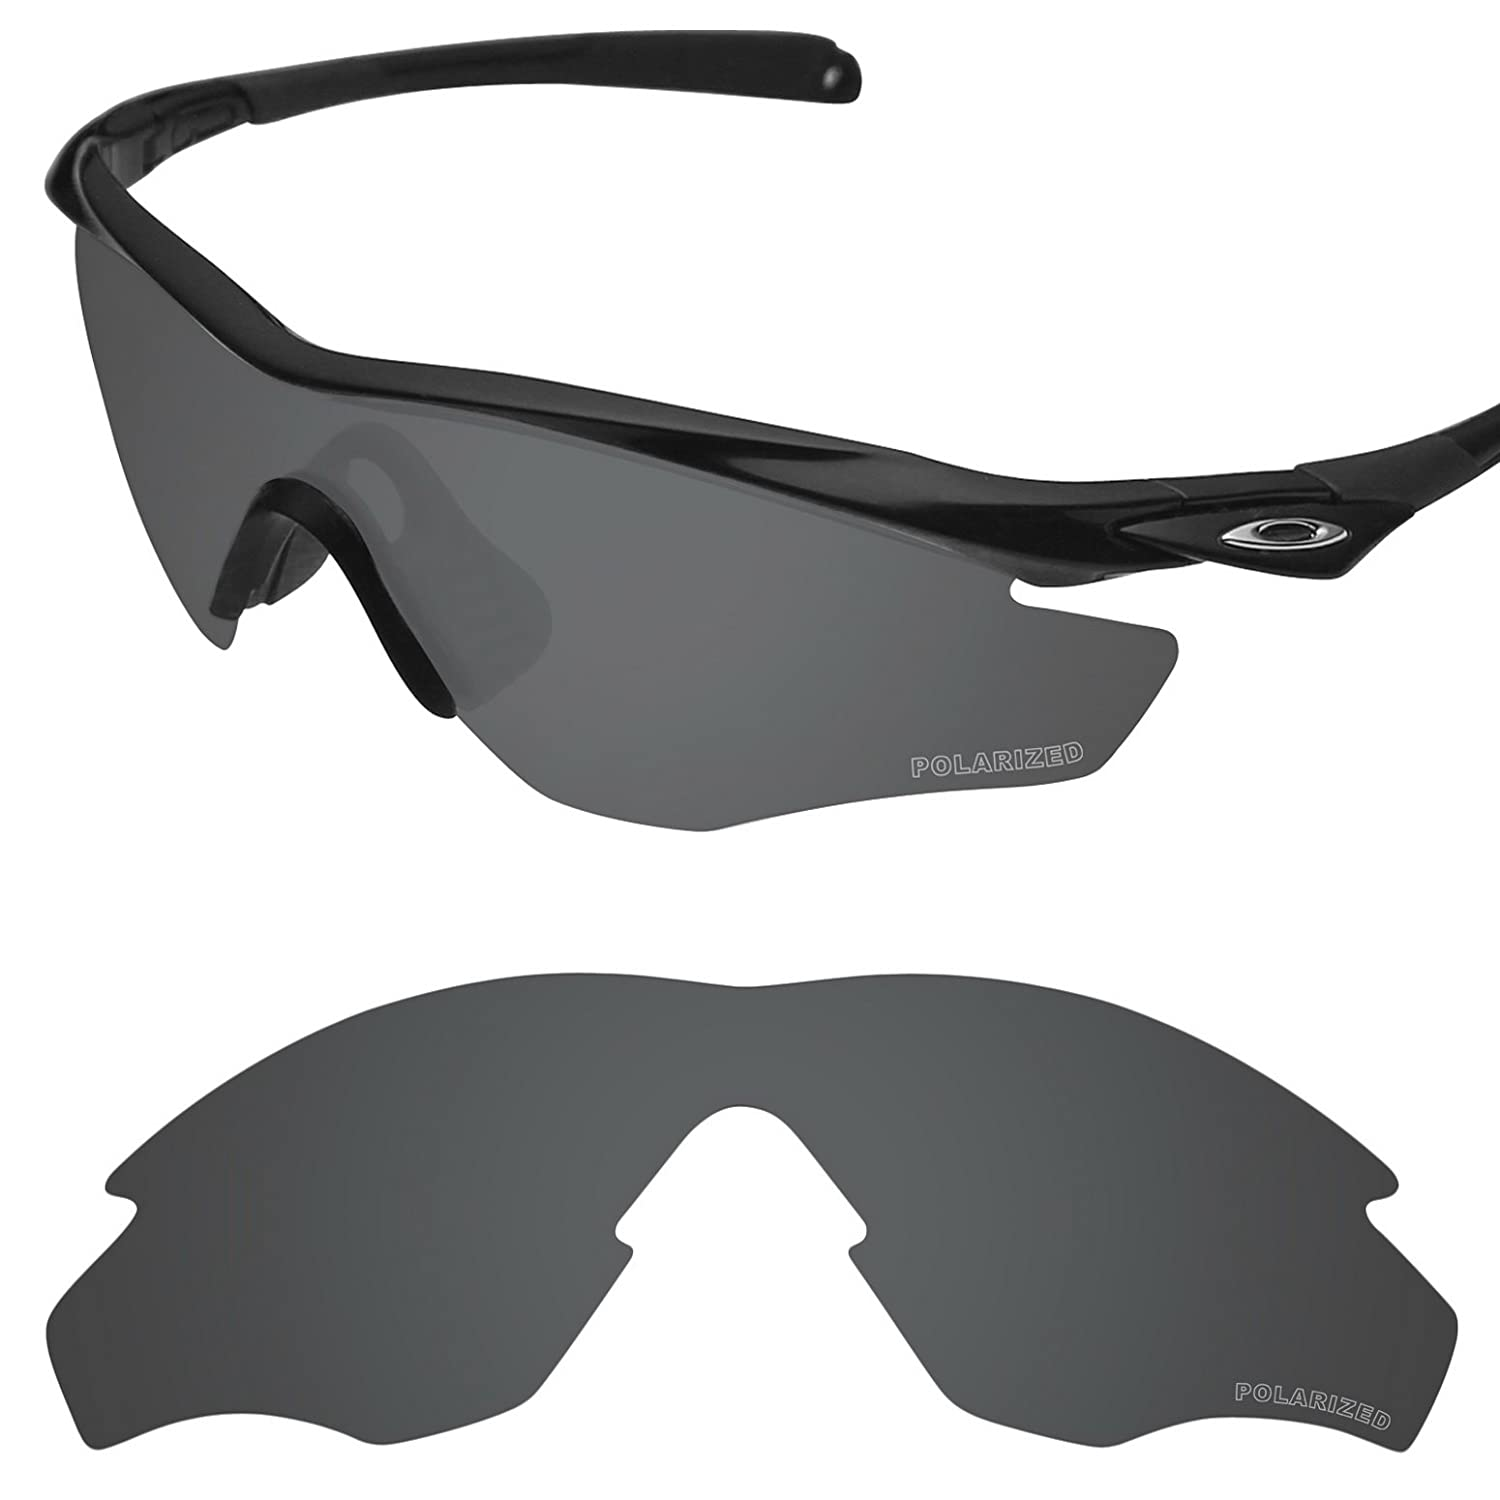 94053c06086 Amazon.com  Tintart Performance Replacement Lenses for Oakley M2 Frame  Polarized Etched - Value Pack  Clothing